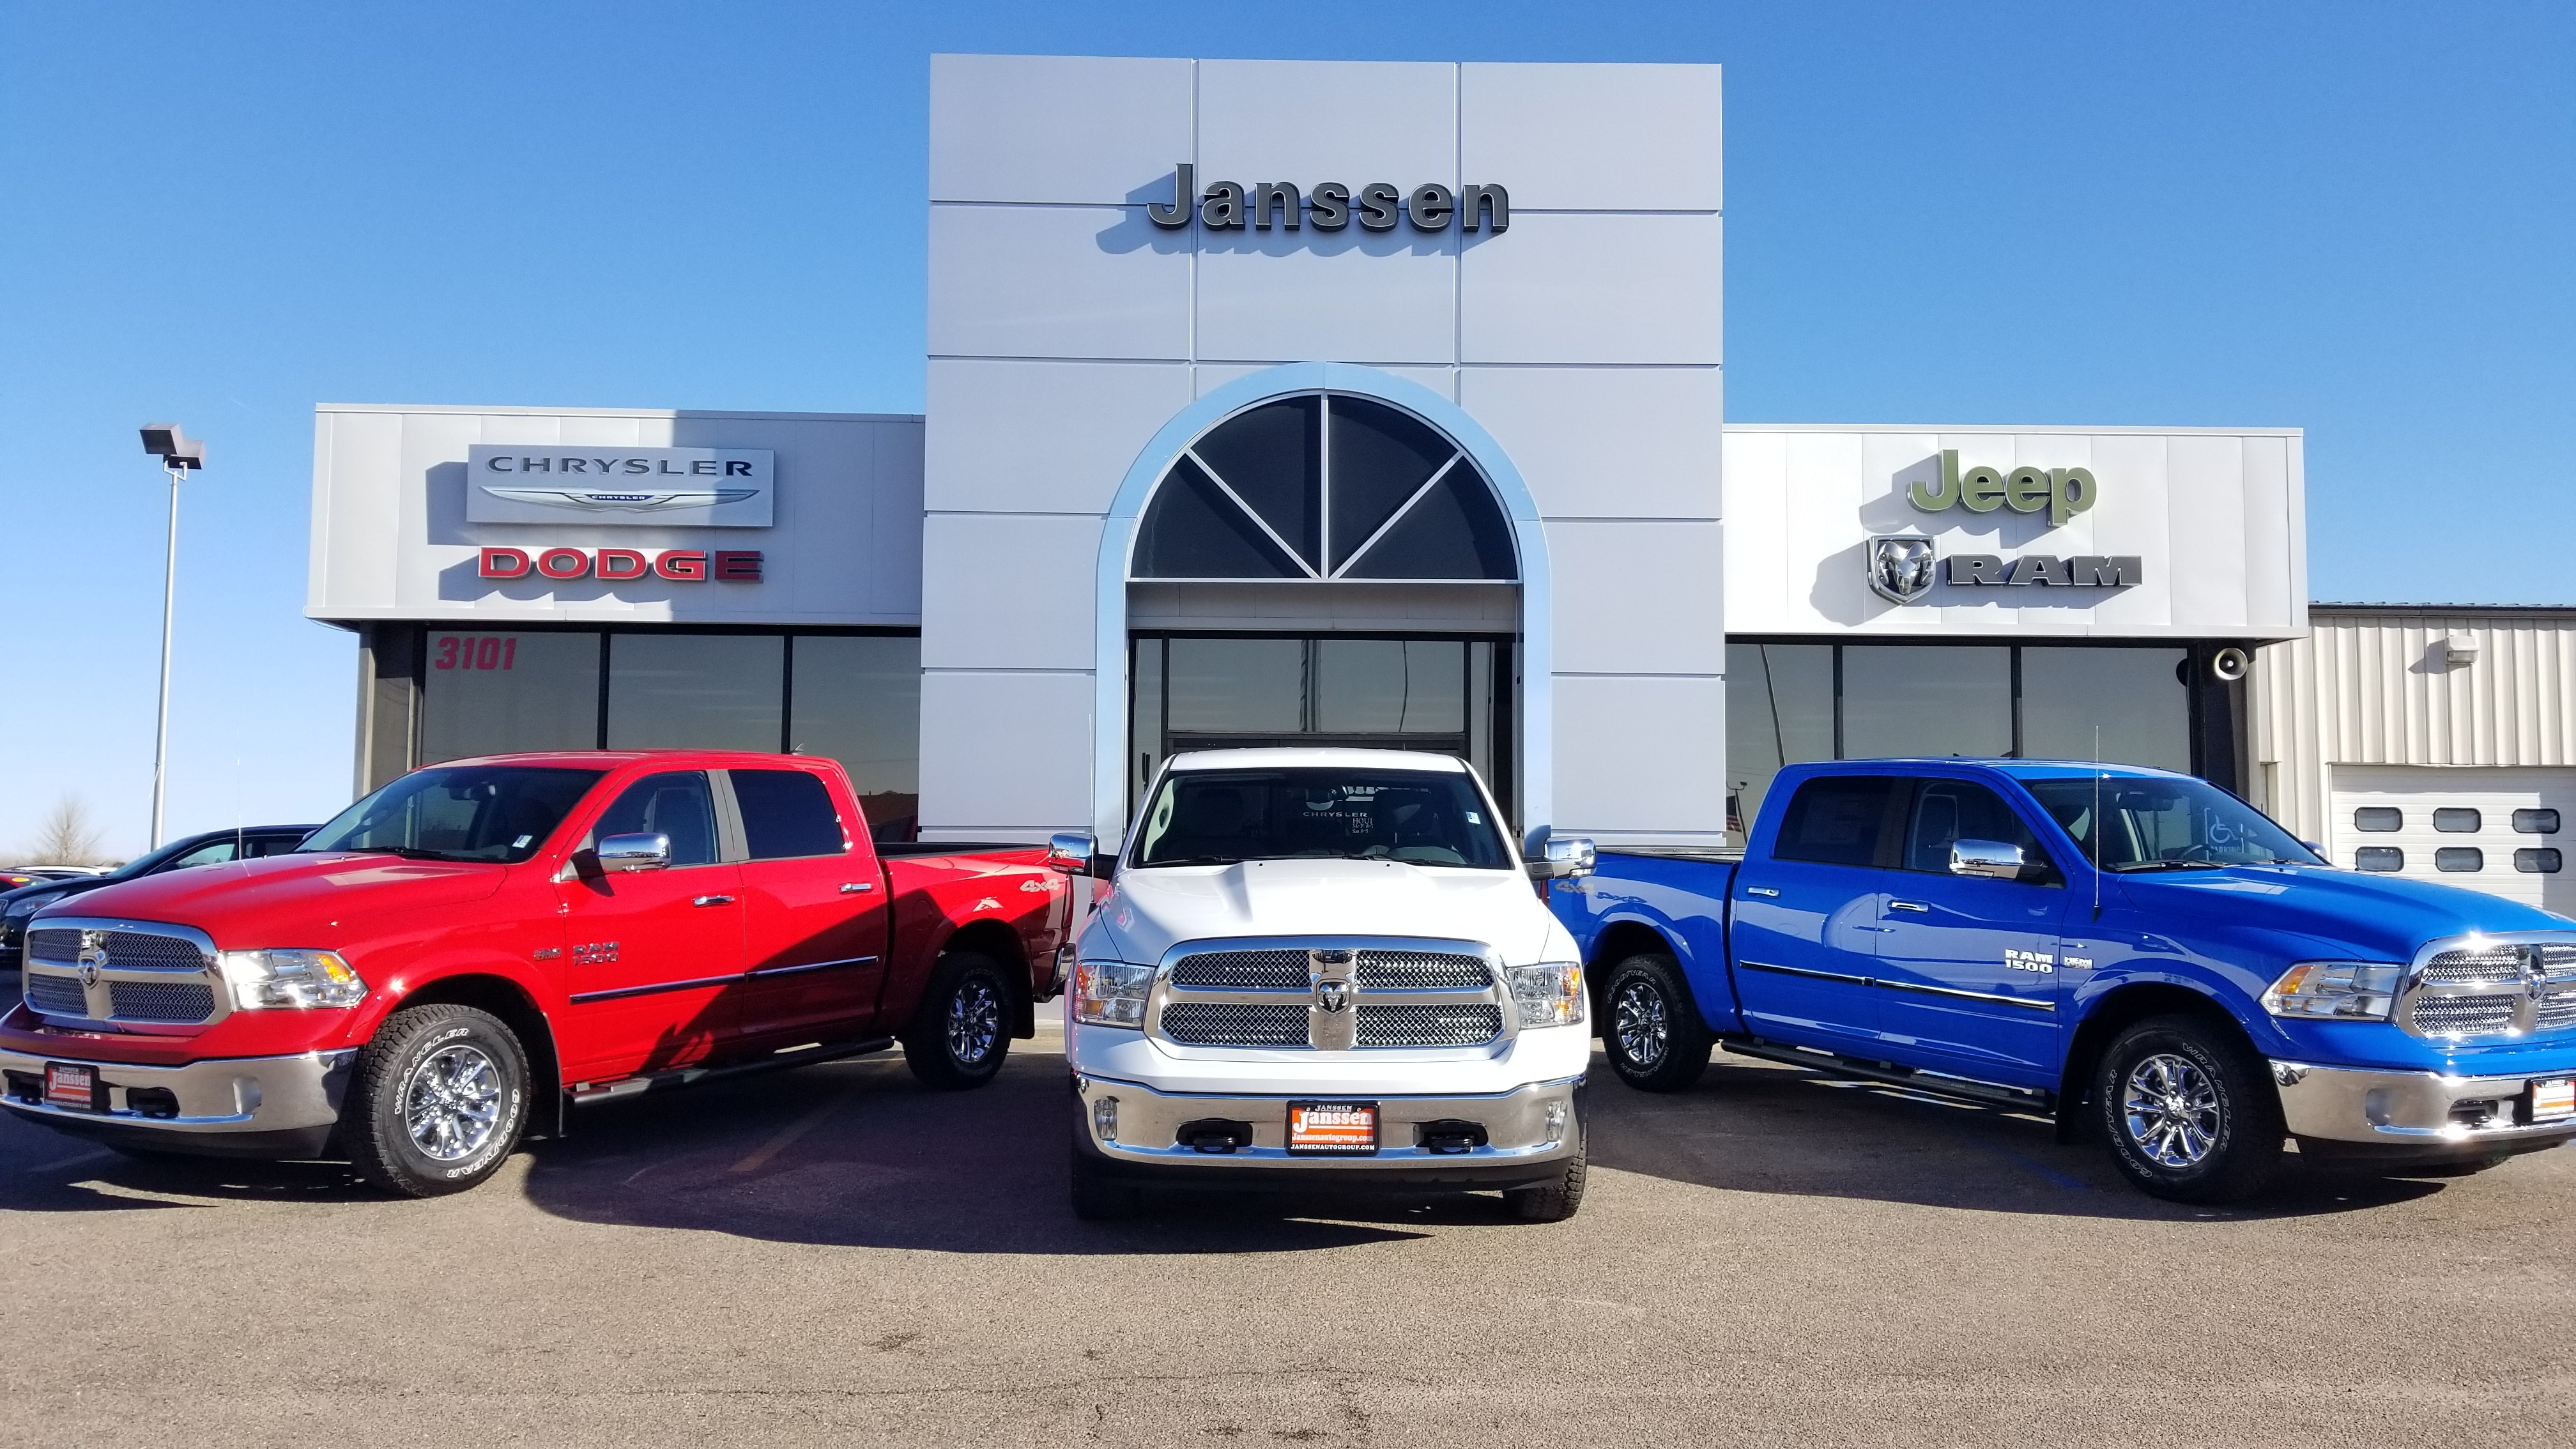 2019 Ram 2500 Incentives, Specials & Offers in North Platte NE